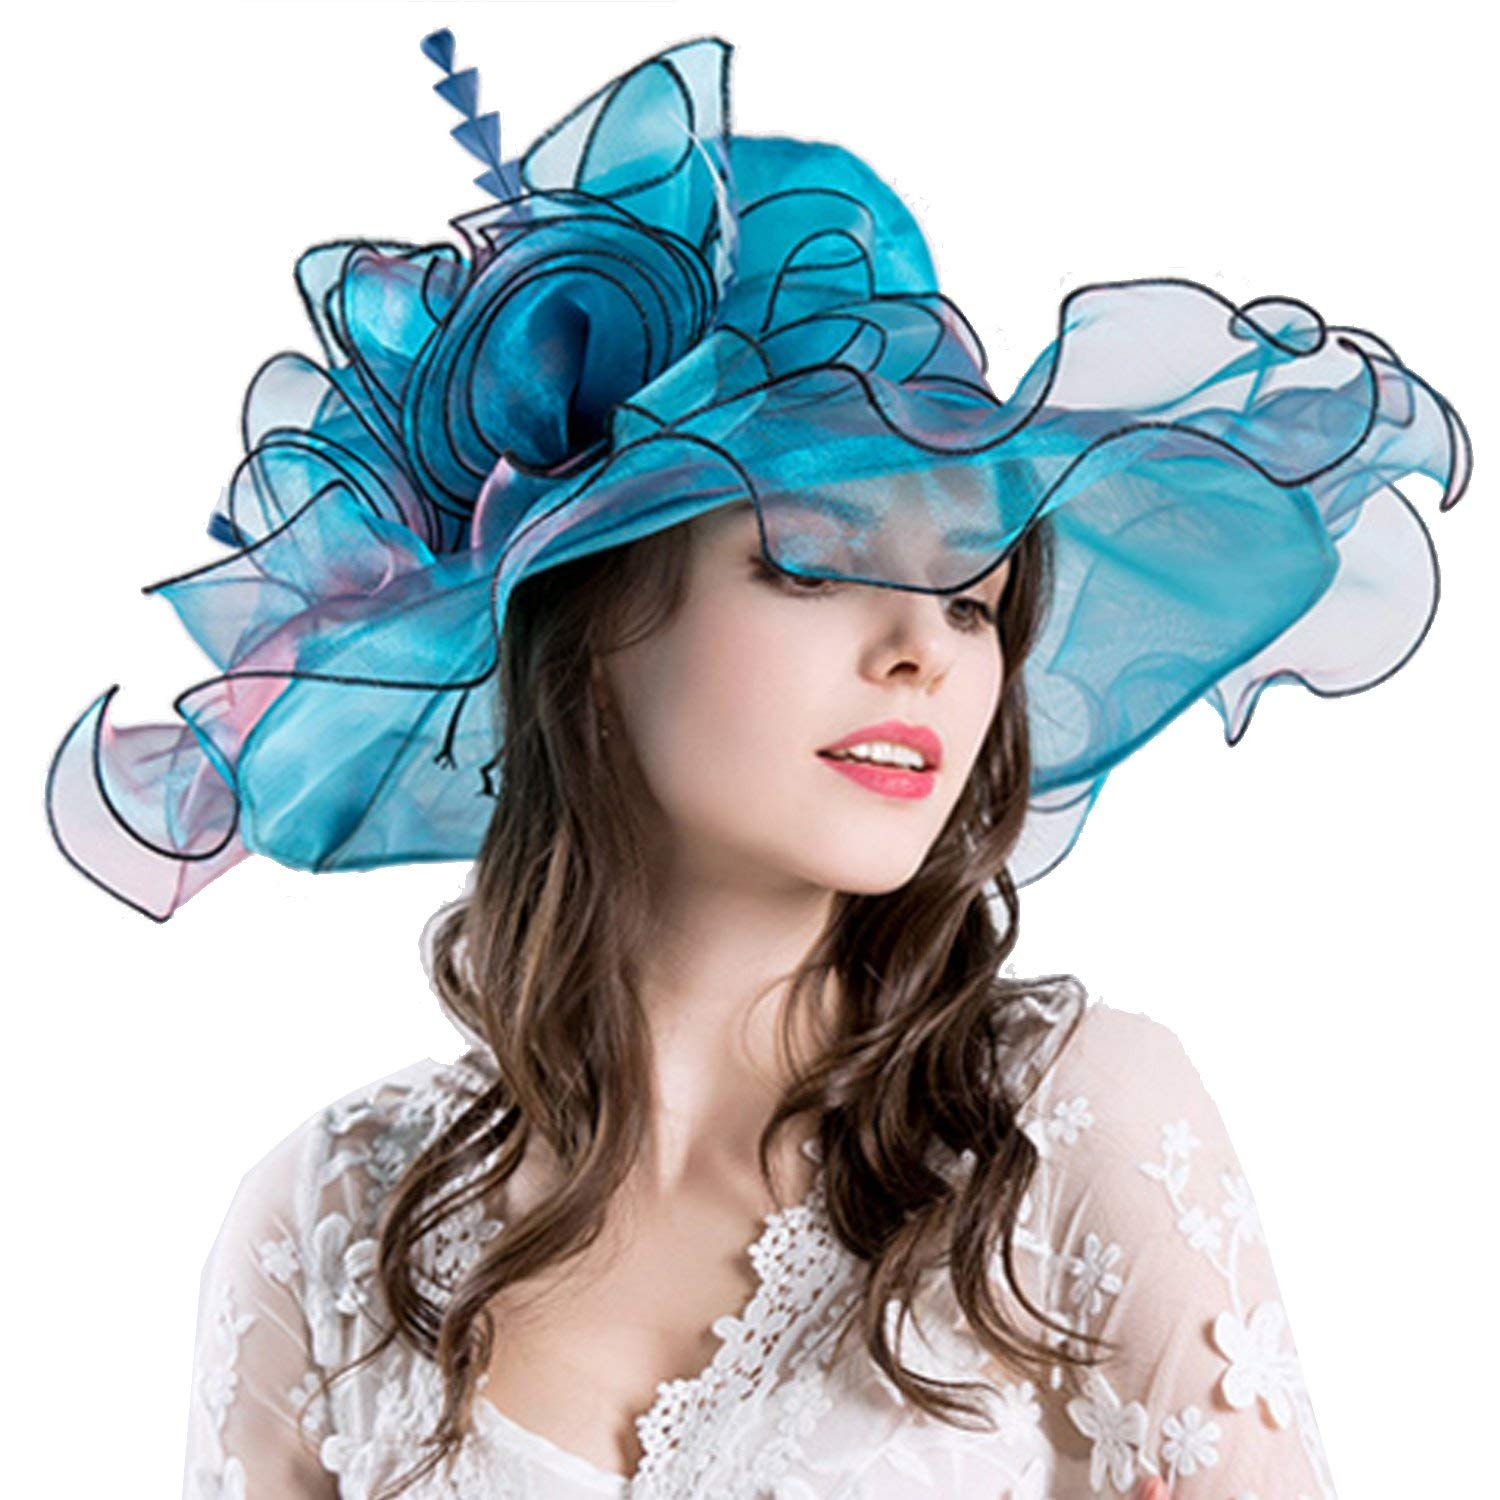 70c42531cd3e13 Get Quotations · Youndcc Women's Organza Church Fascinator Cap Wide Brim  Kentucky Wedding Hat